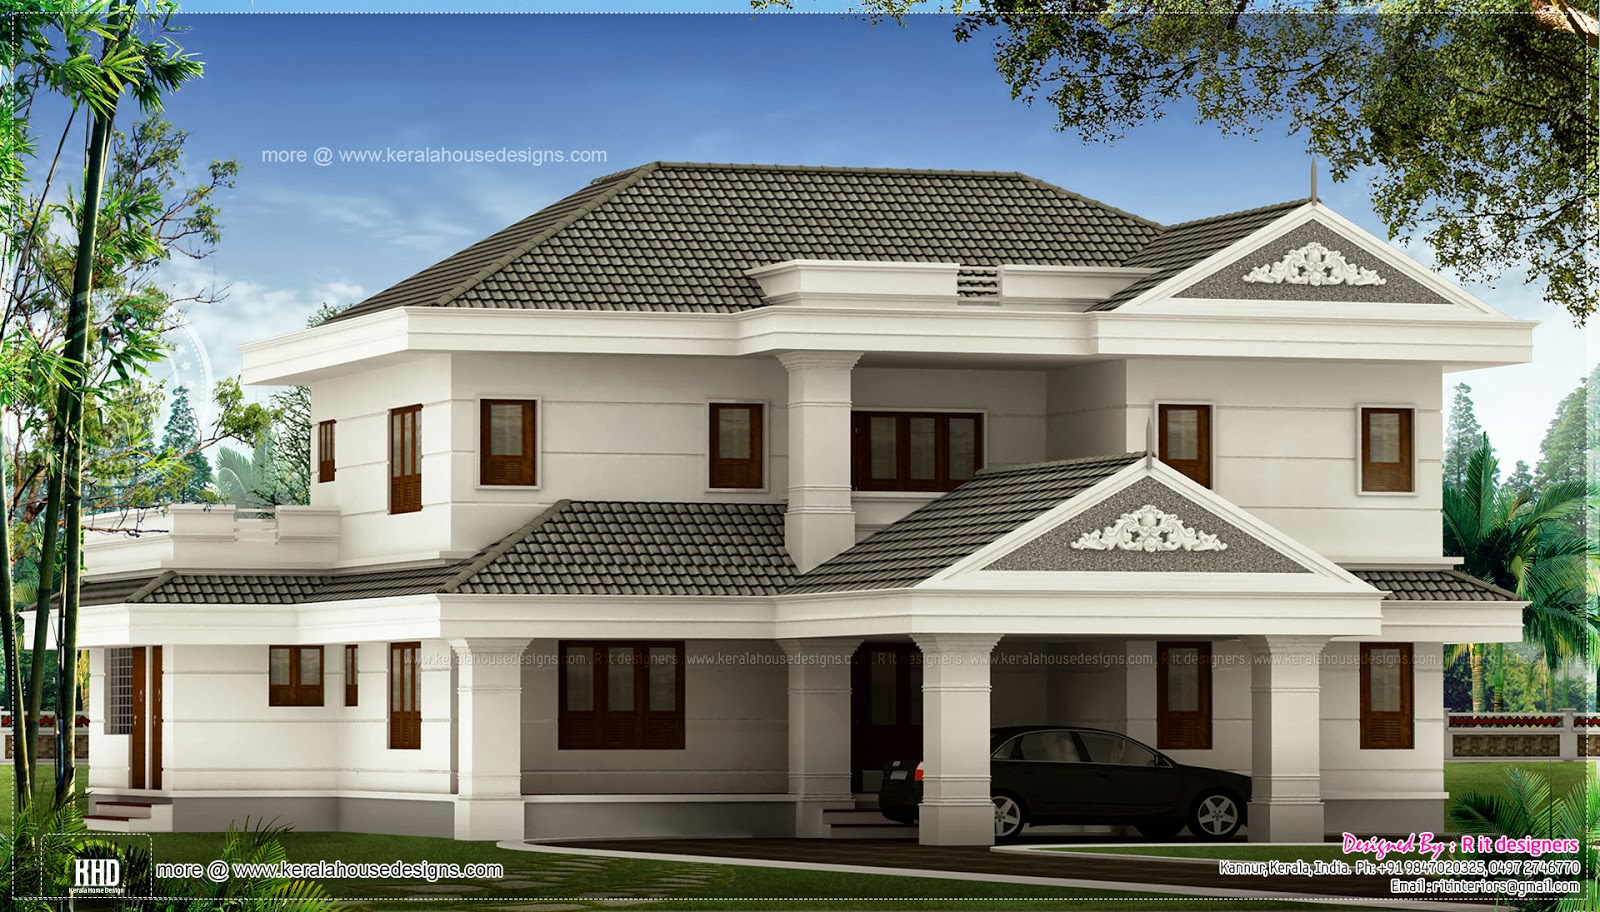 September 2013 kerala home design and floor plans Free indian home plans and designs